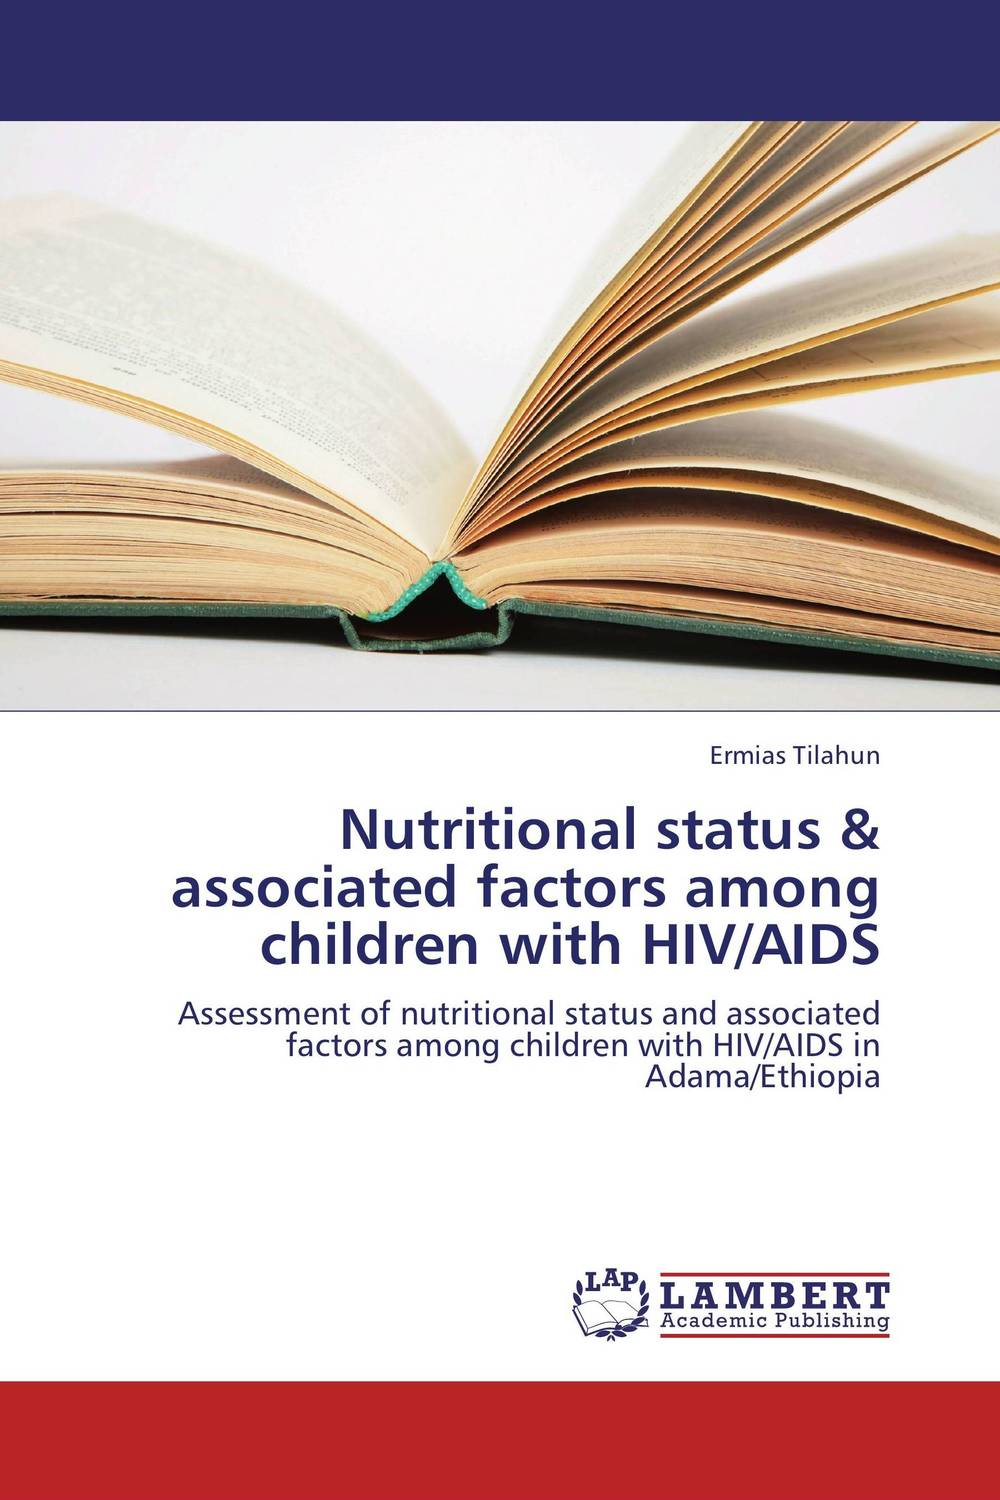 Nutritional status & associated factors among children with HIV/AIDS